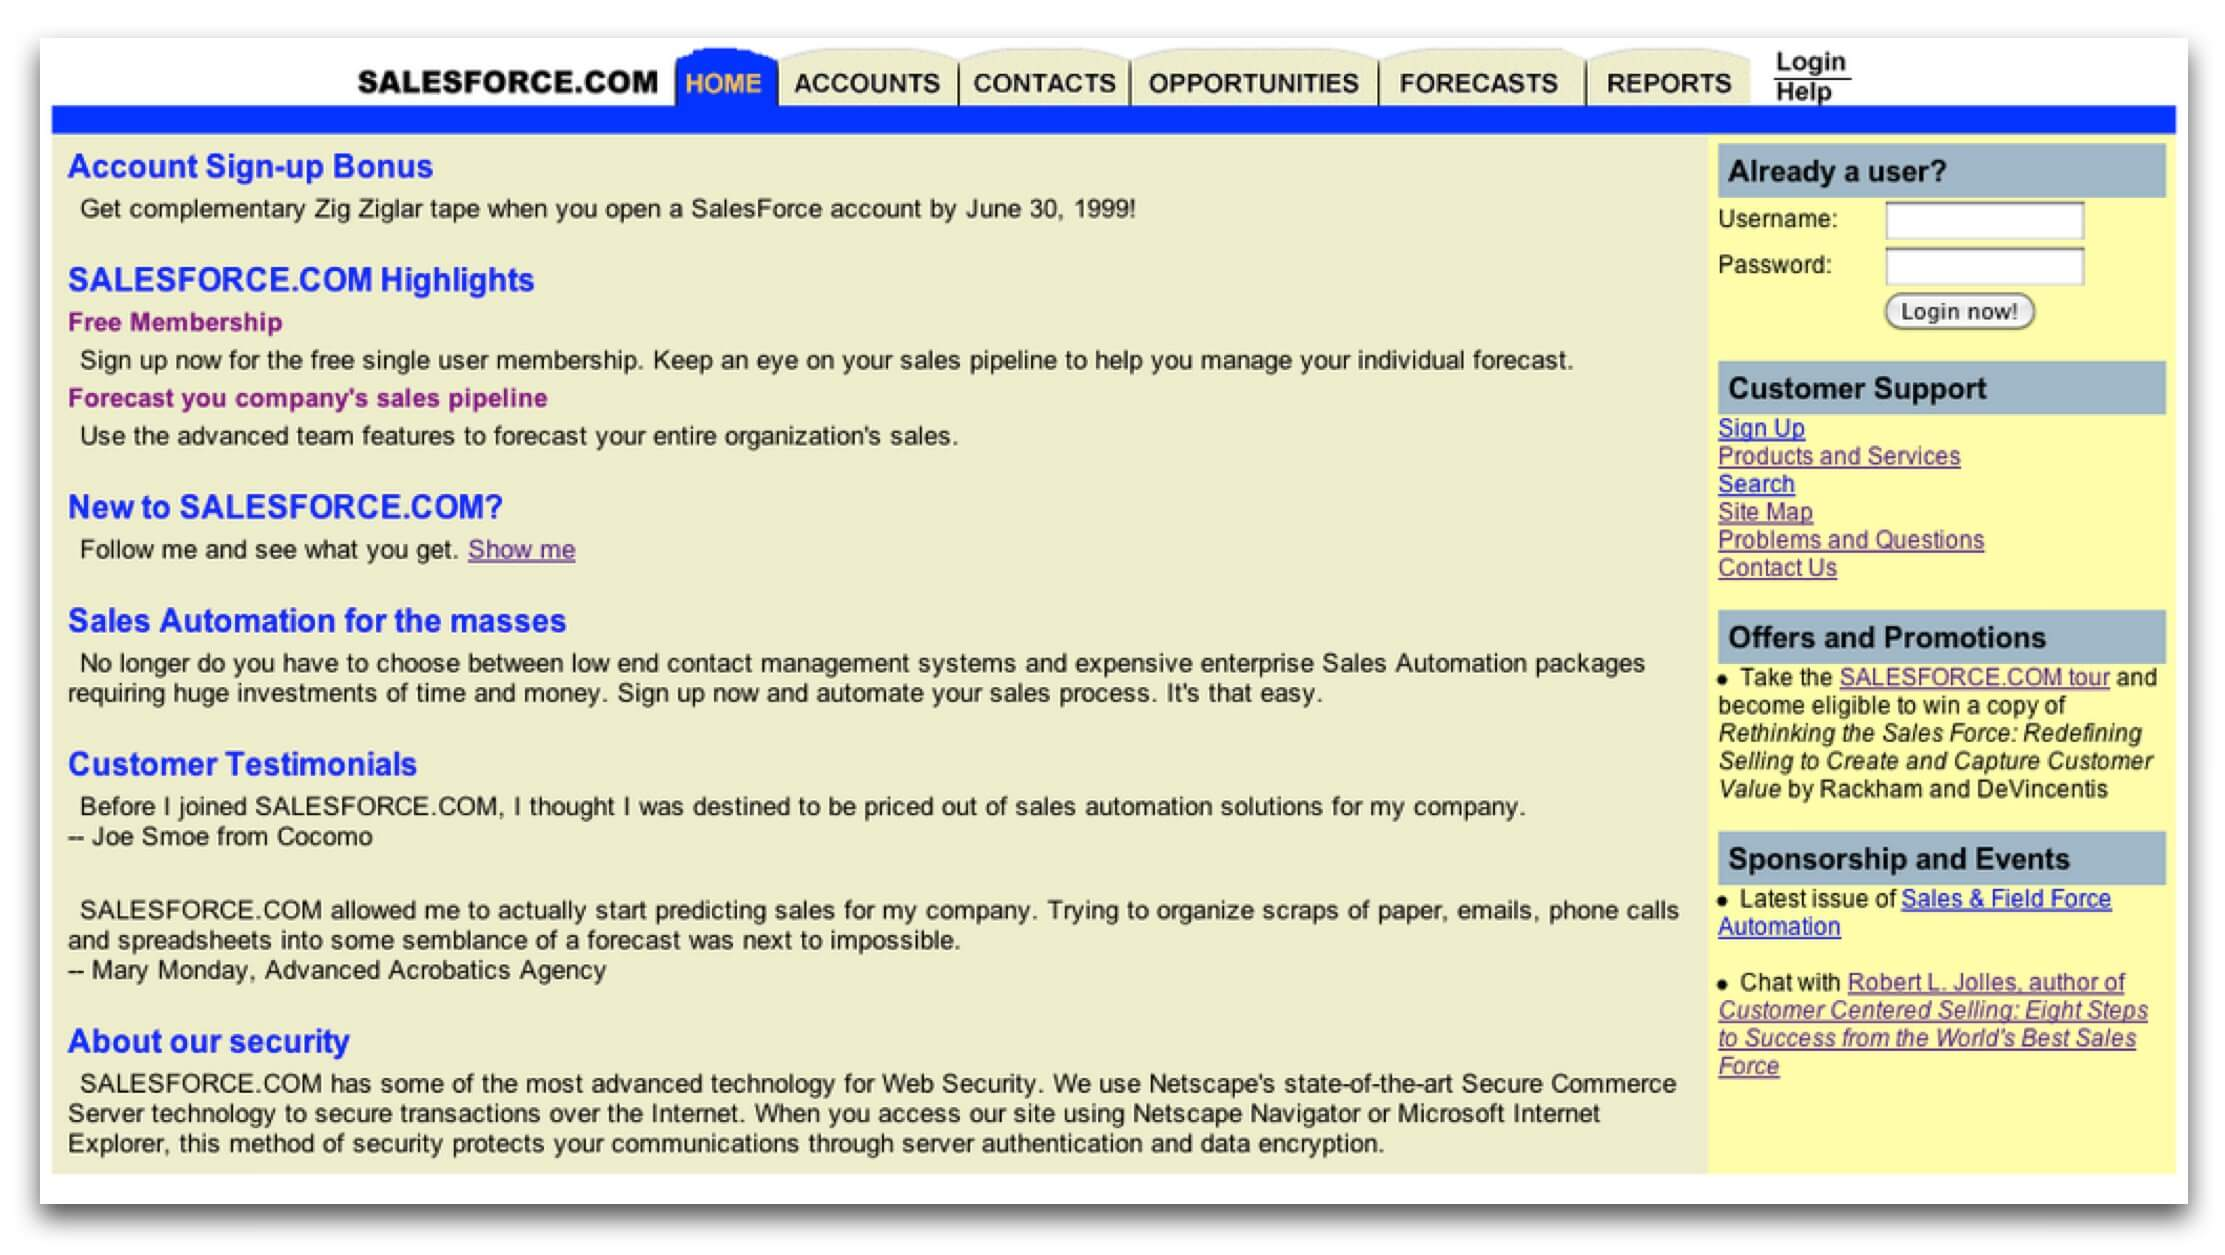 The Salesforce homepage when it launched in 1999